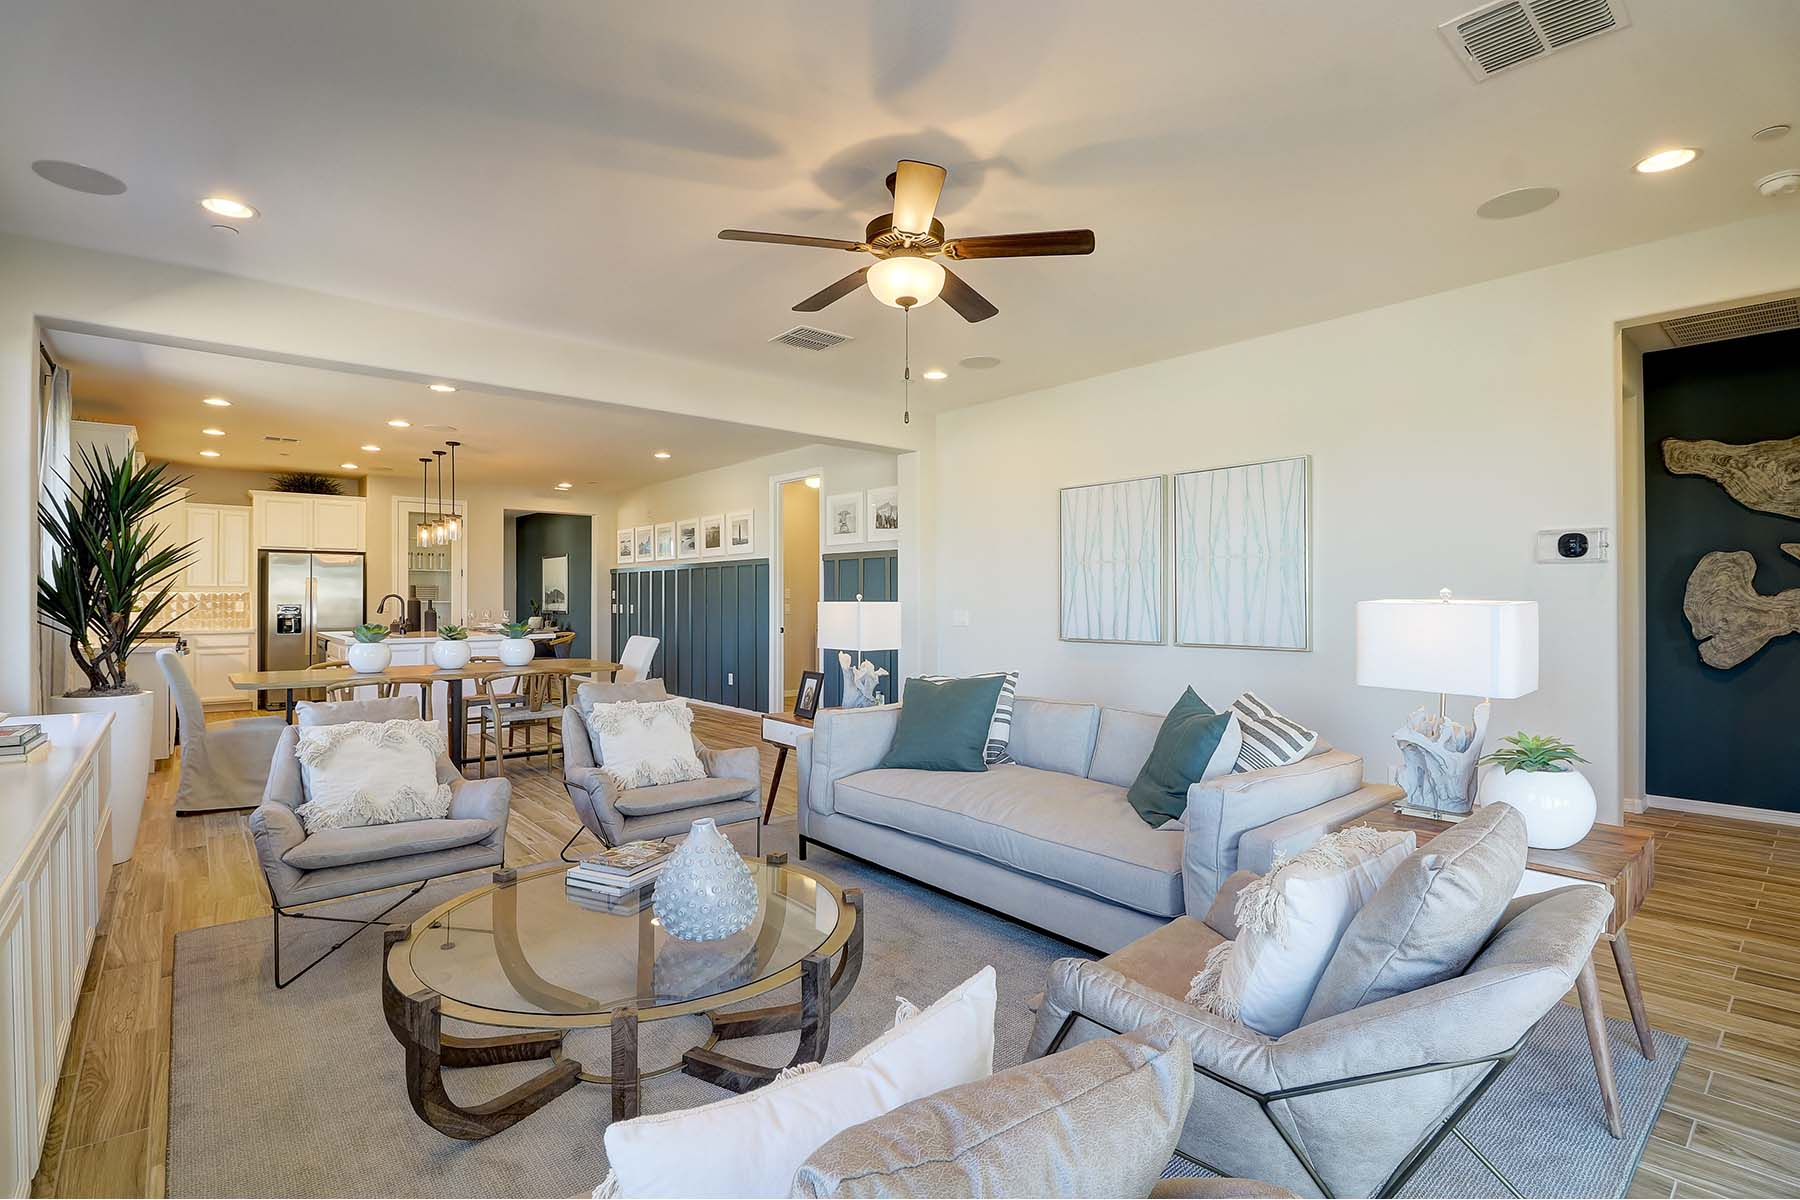 Everly Plan Greatroom at Brookside at Arroyo Seco in Buckeye Arizona by Mattamy Homes